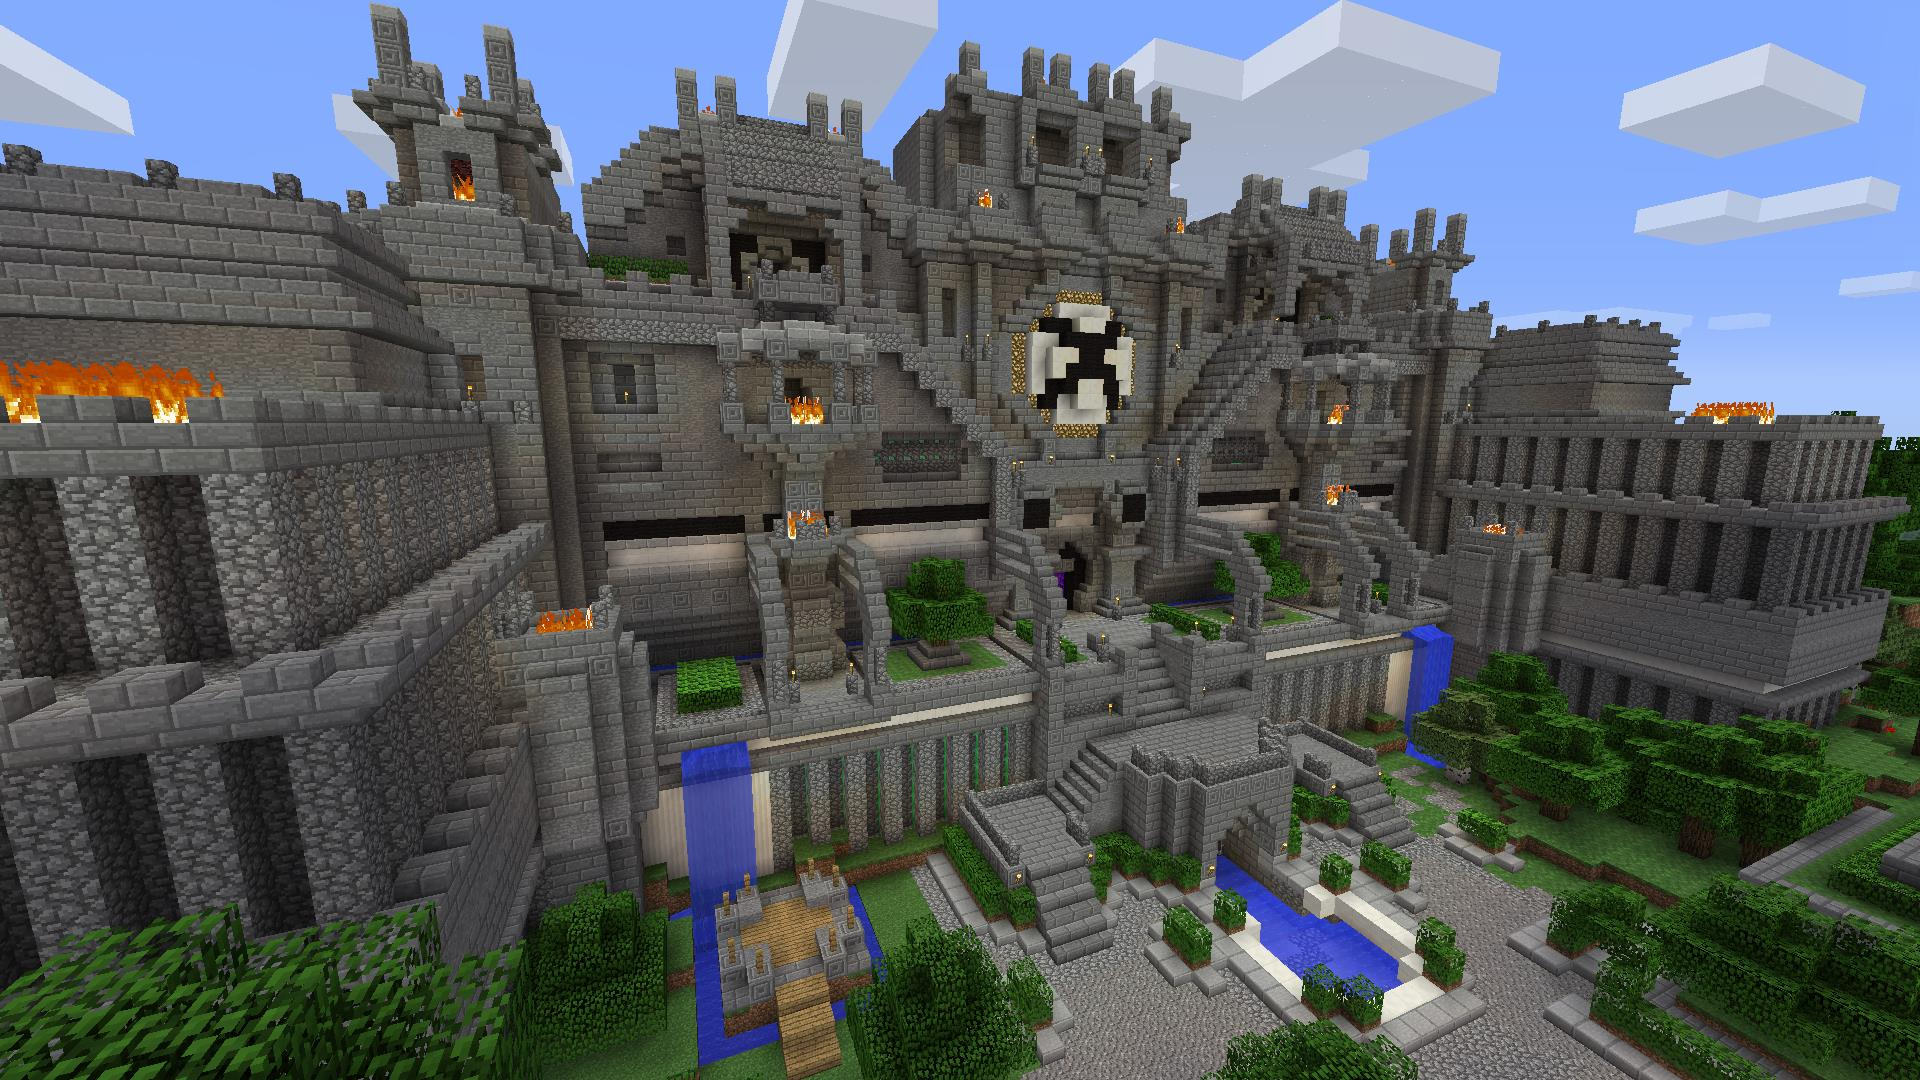 Microsoft has paid $7 million to Minecraft content creators since June